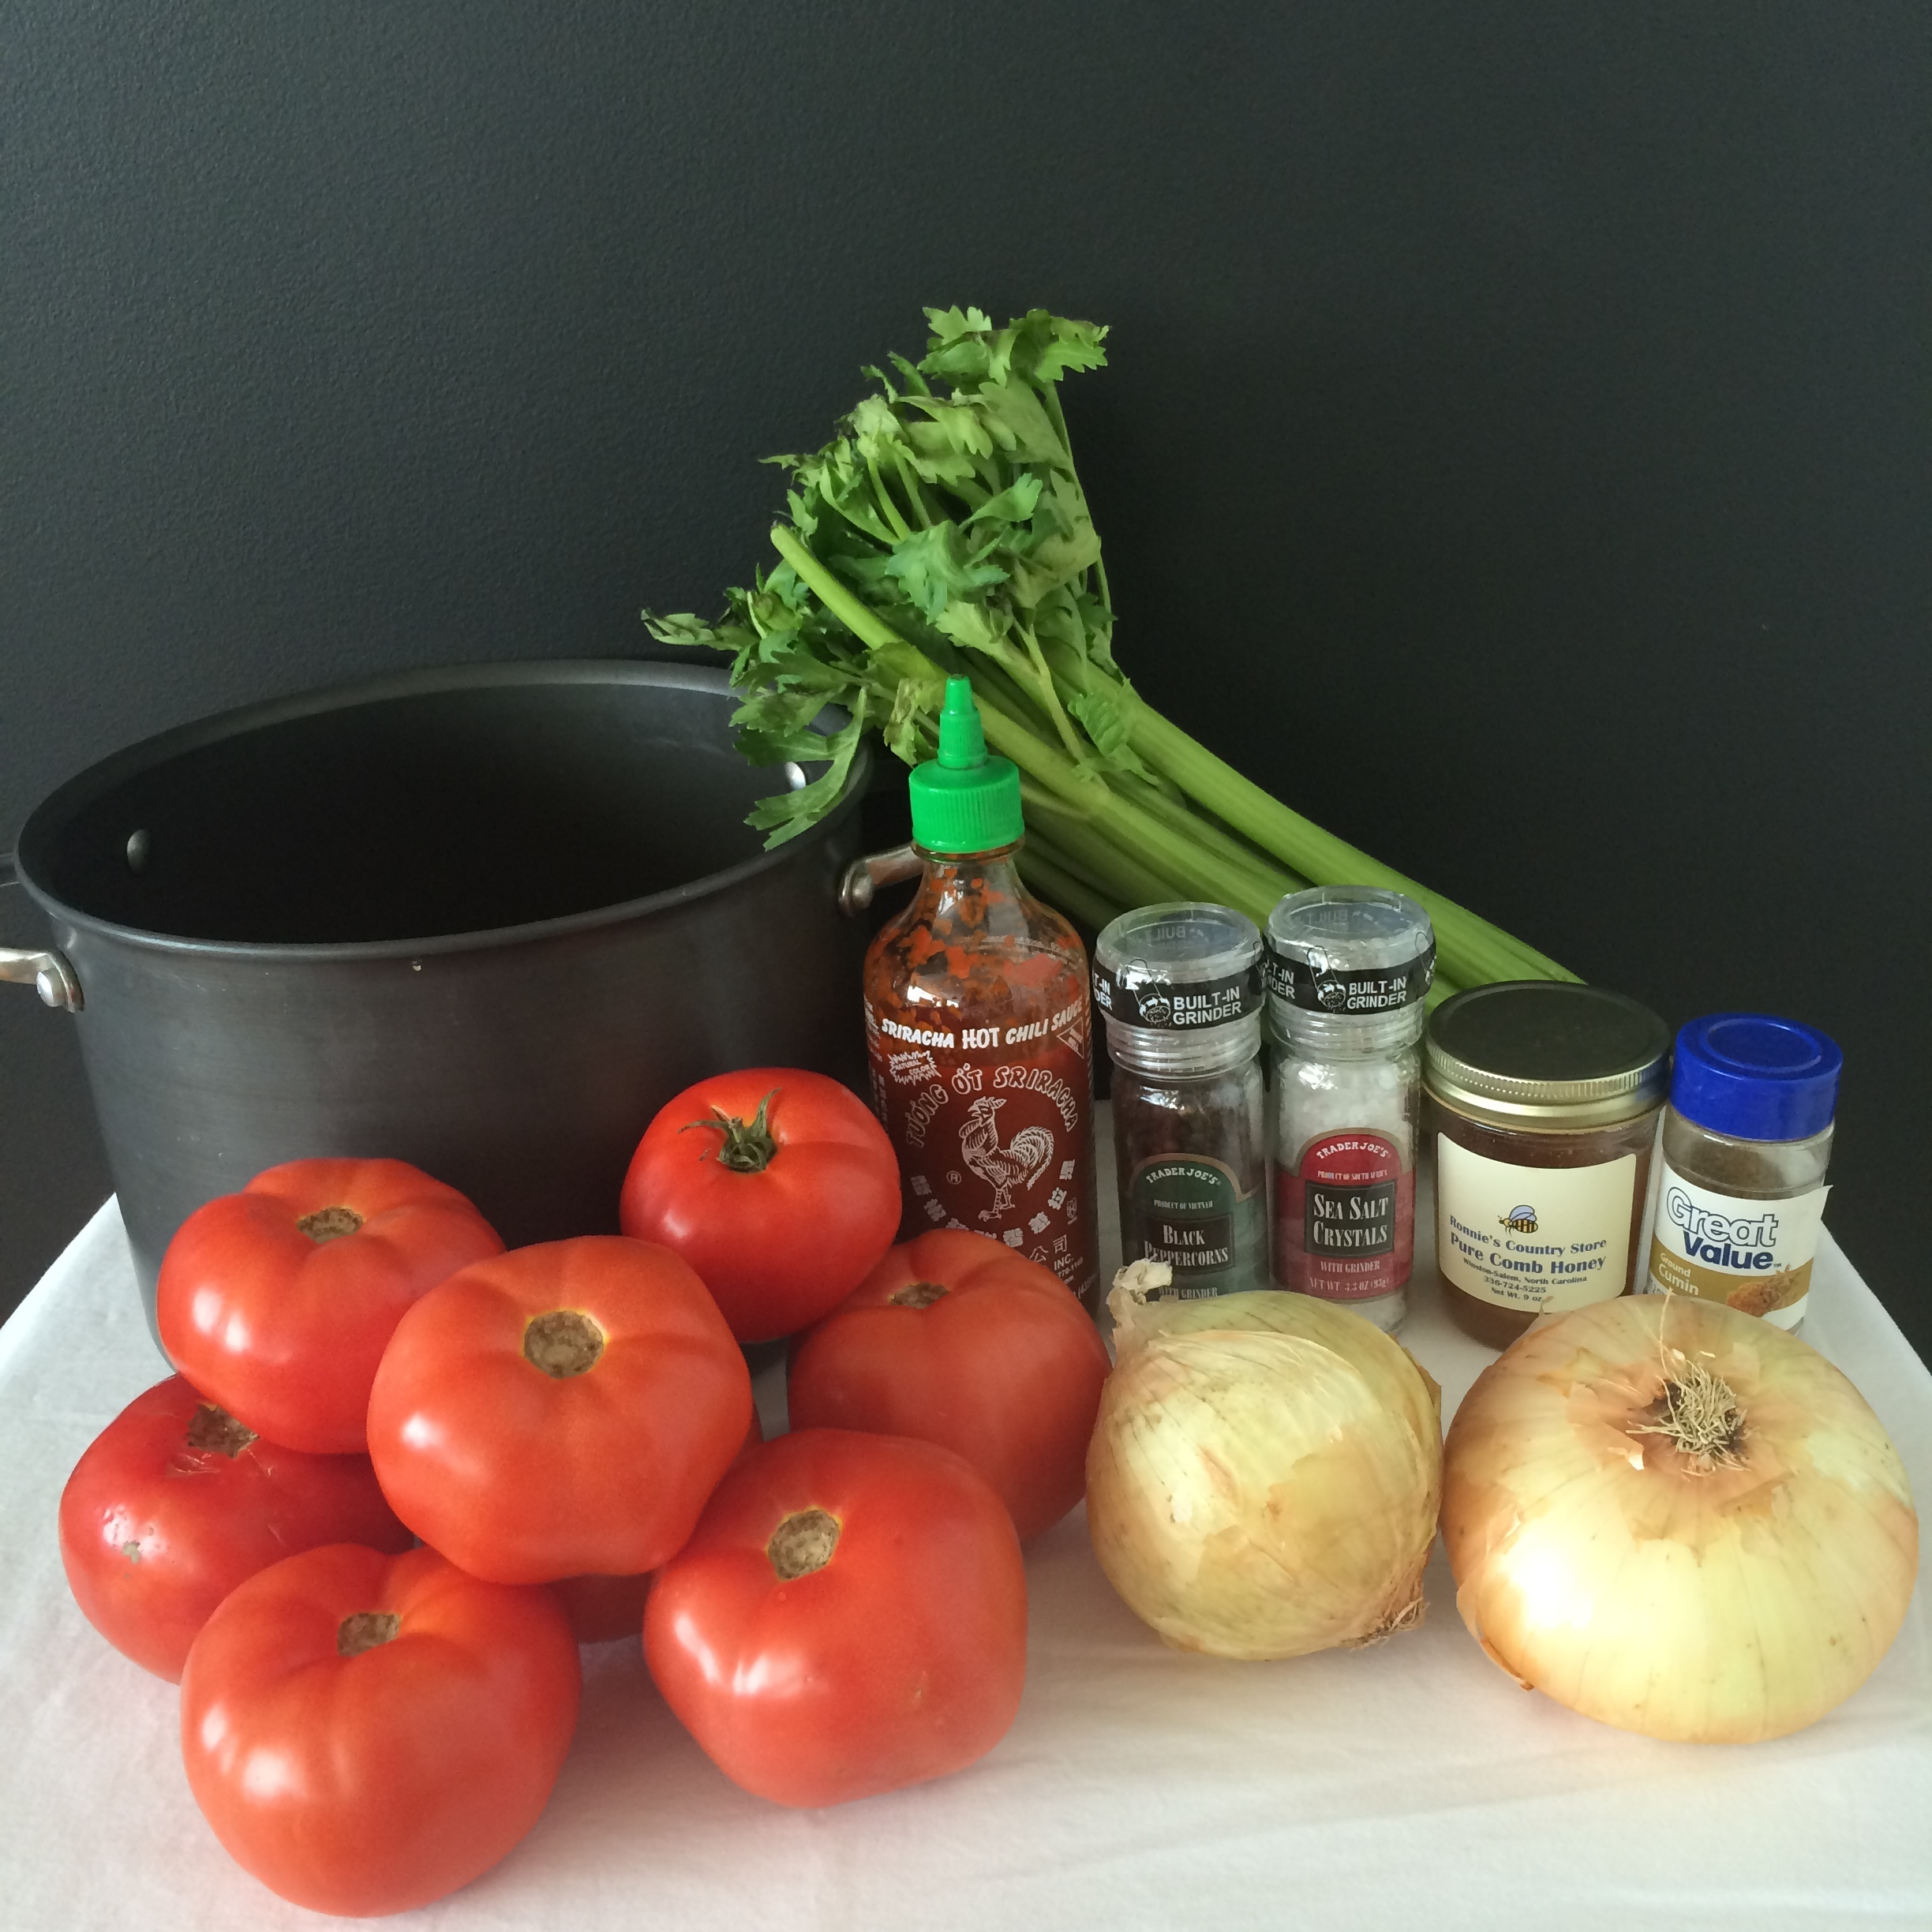 Ingredients for Tomato Juice | Mrs Amber Apple blog